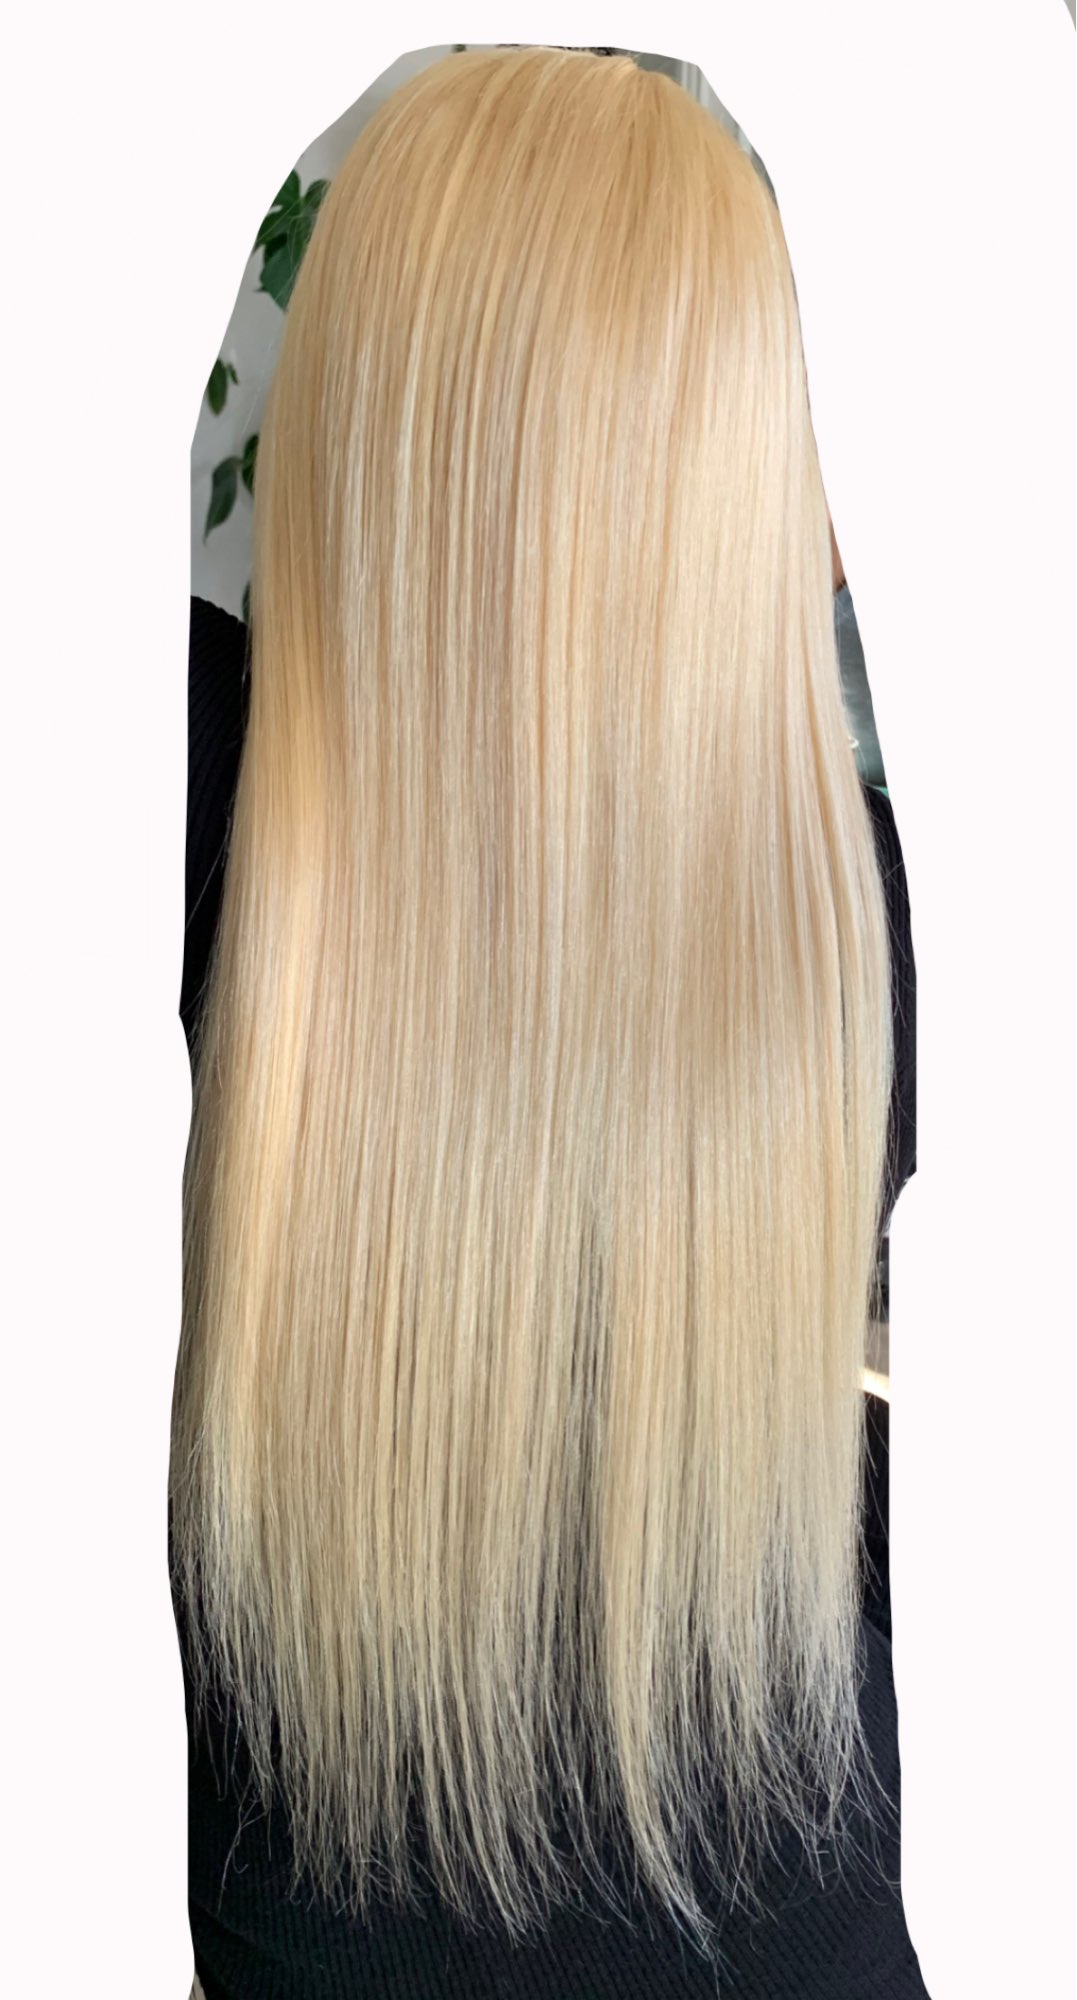 613 T Part Lace Wig Blonde Wig Human Hair Wigs Brazilian Straight Remy Pre Plucked 13x1 Part Human Hair Wigs For Black Women photo review